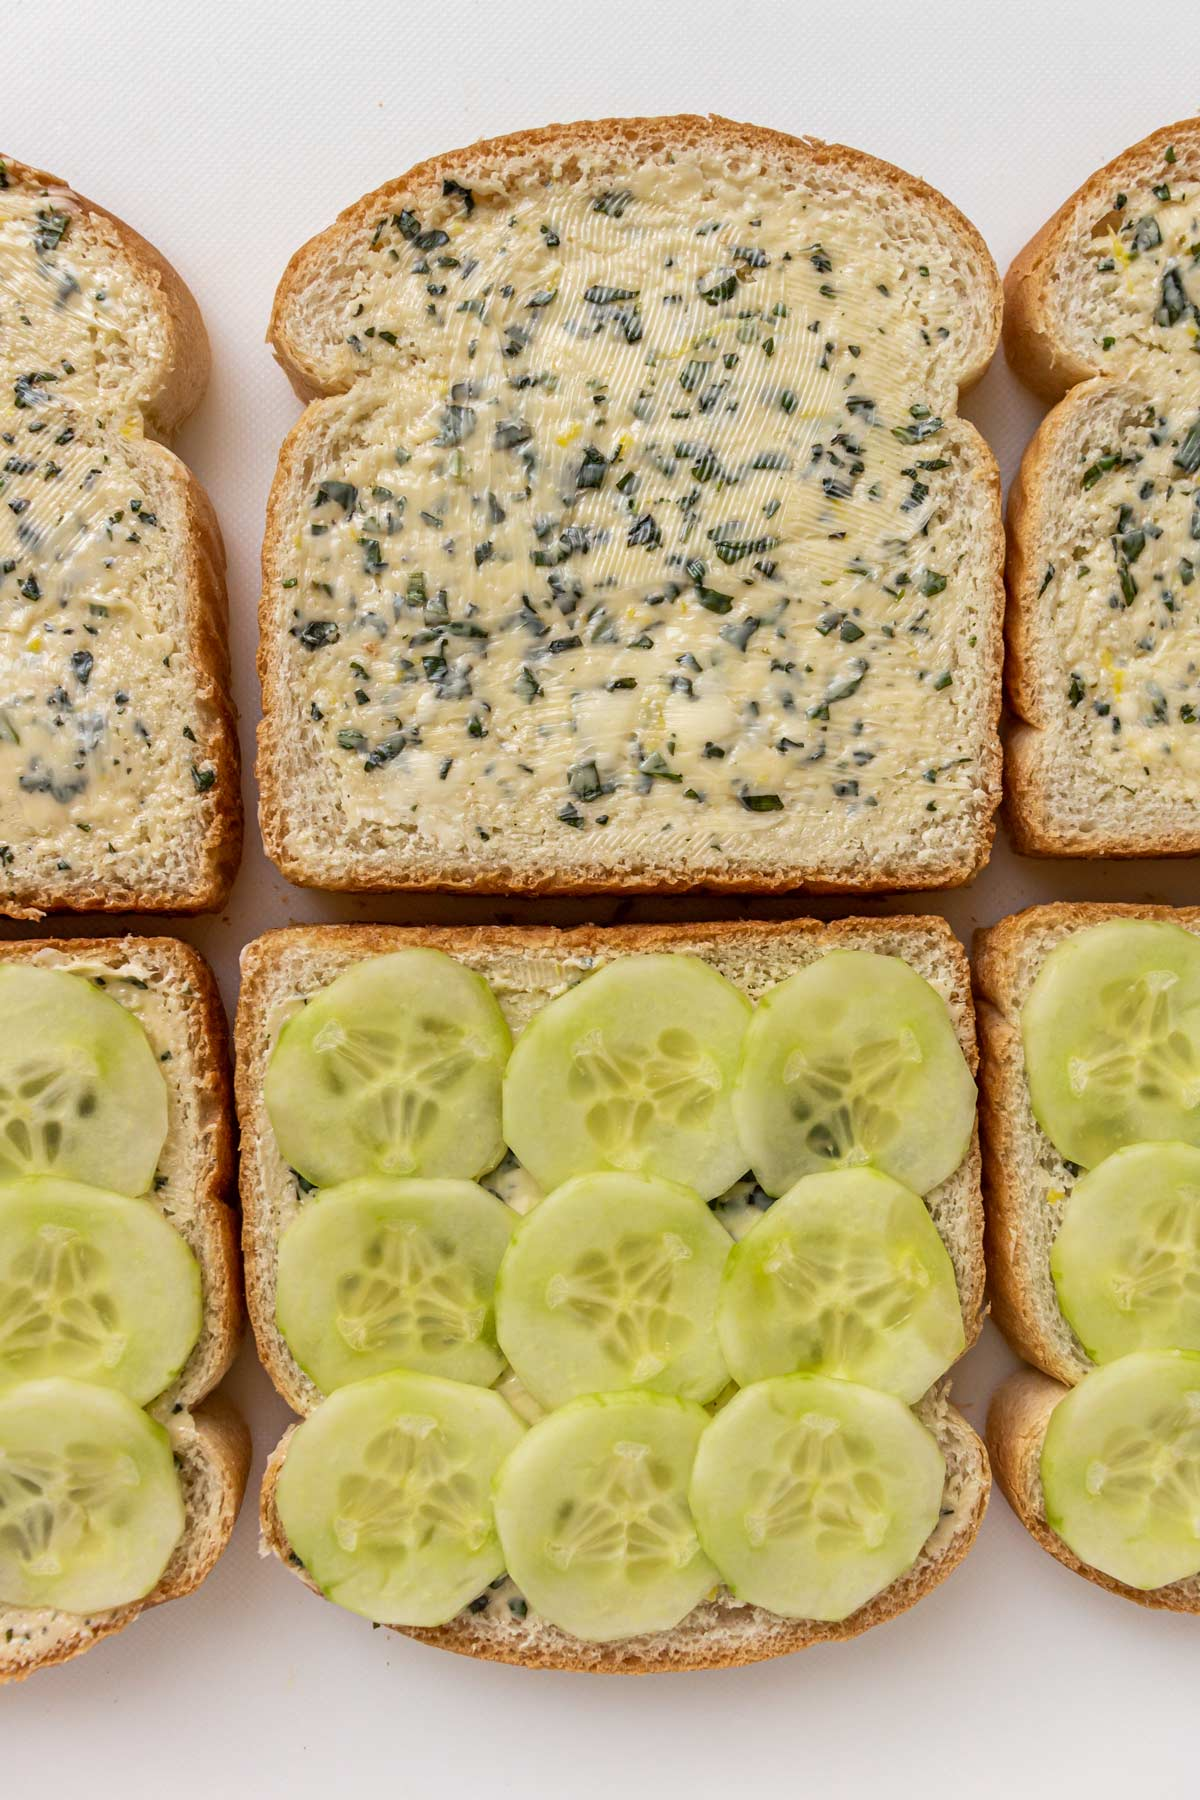 Sandwich bread spread with lemon herb butter with sliced cucumber slices on the other halves.